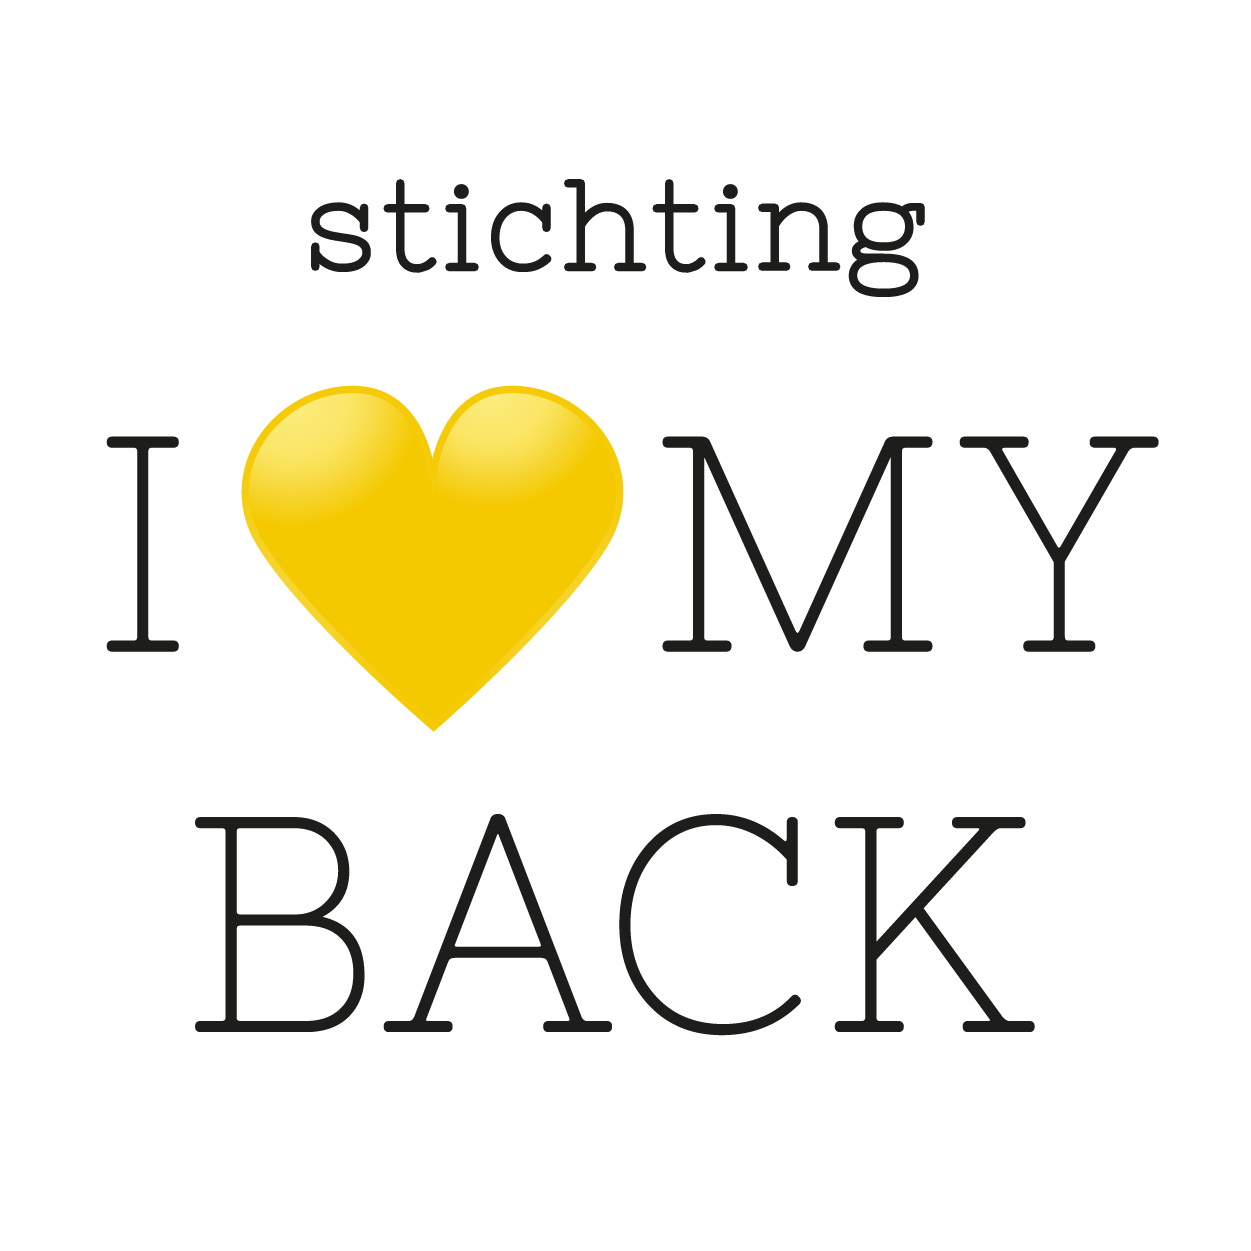 Stichting i love my back scoliose